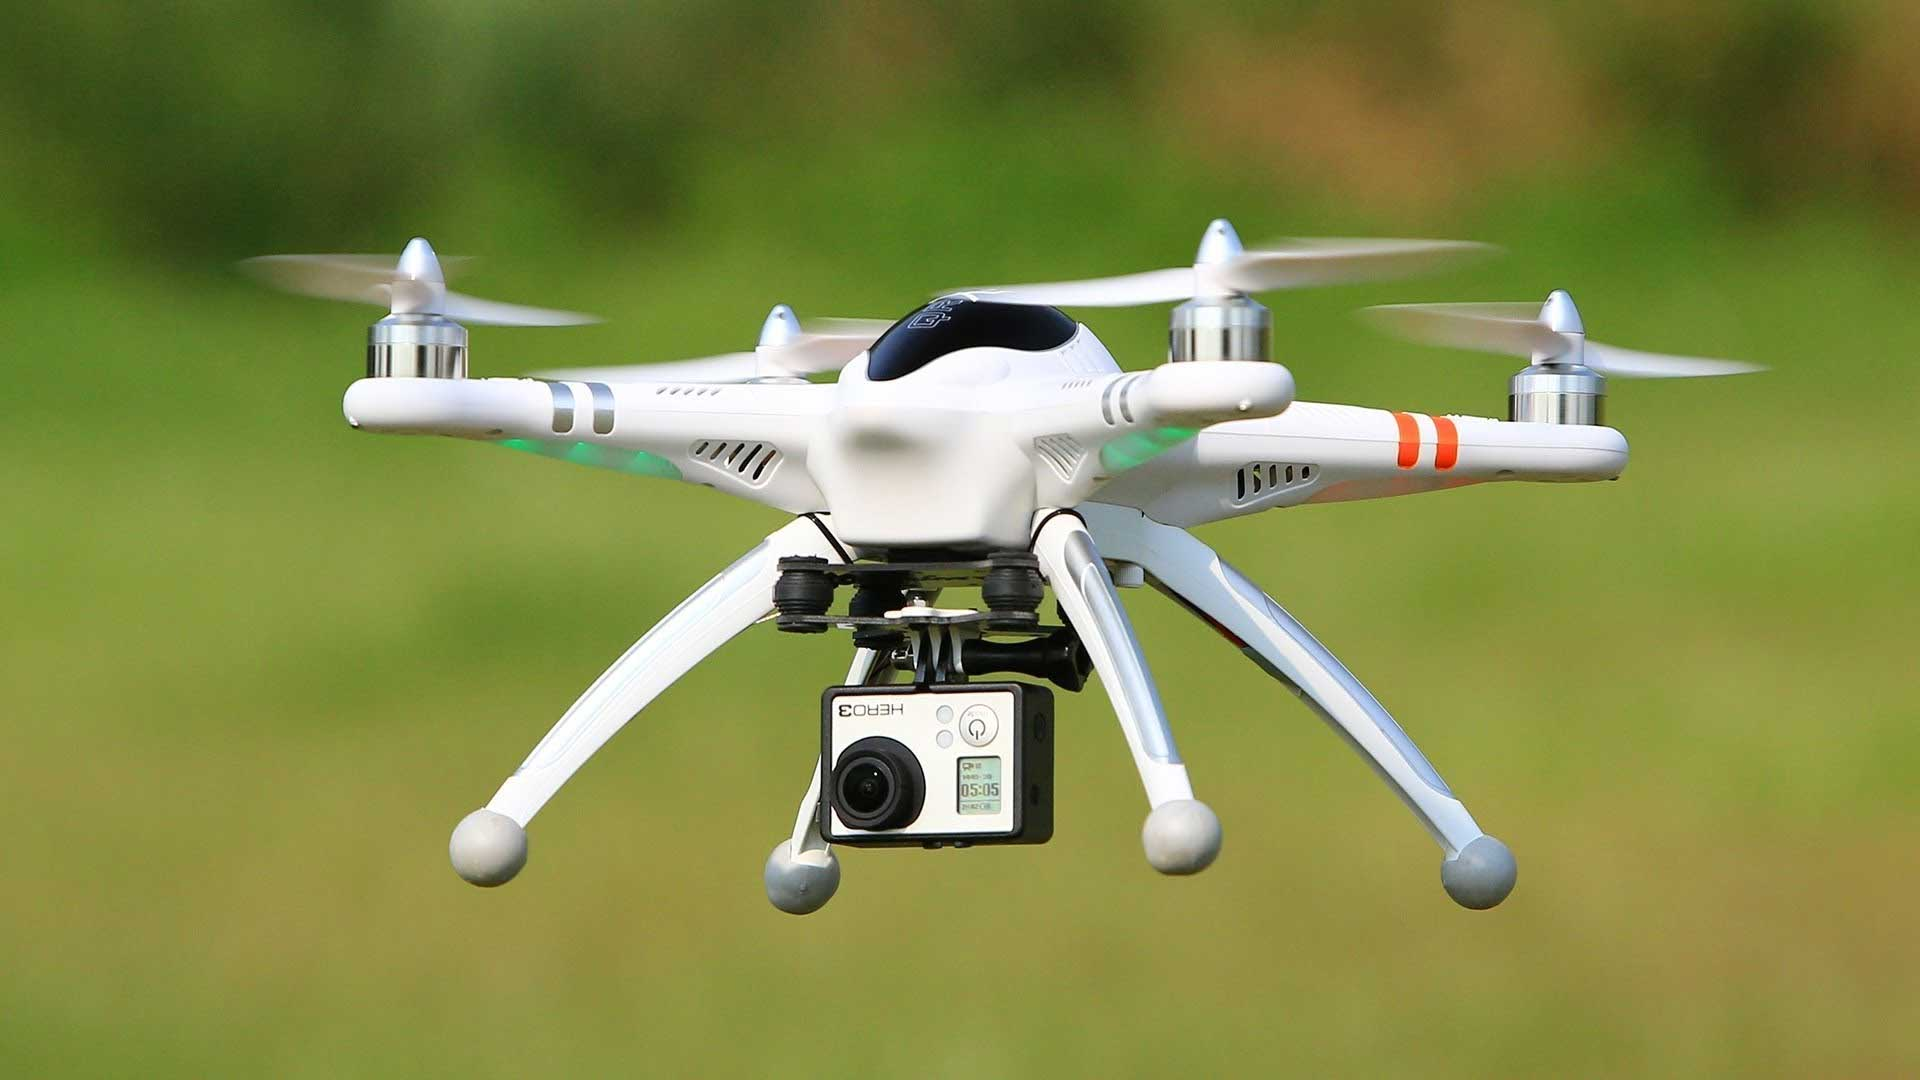 FAA to require external registration markings on your drones